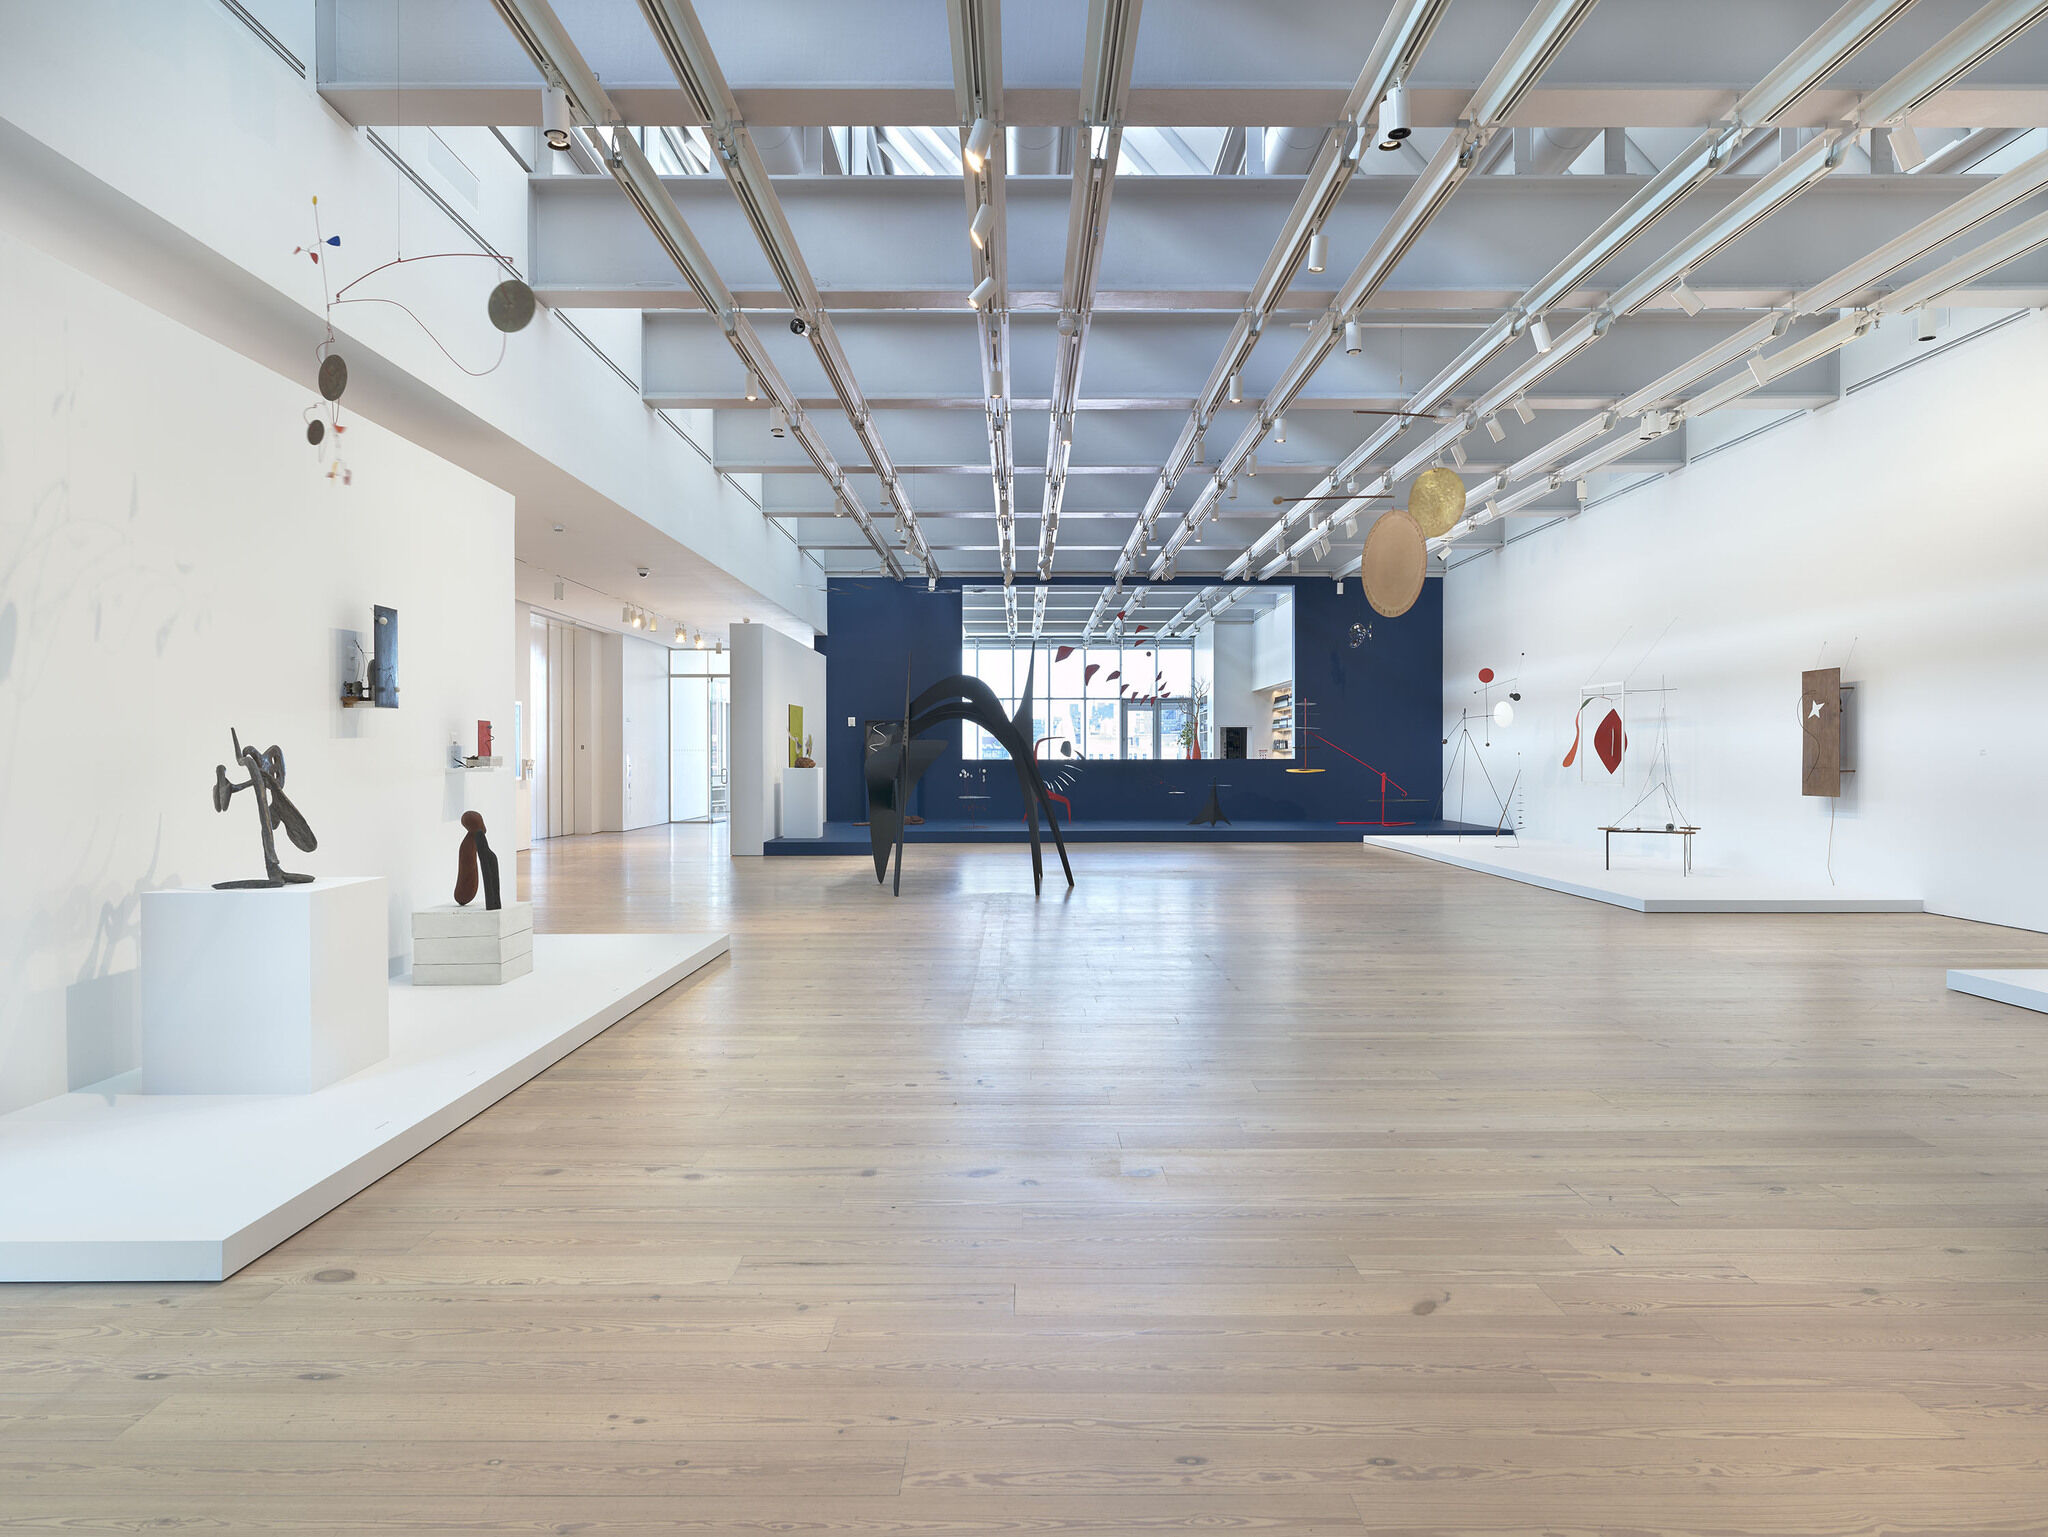 Gallery view of Calder: Hypermobility looking towards Studio Cafe